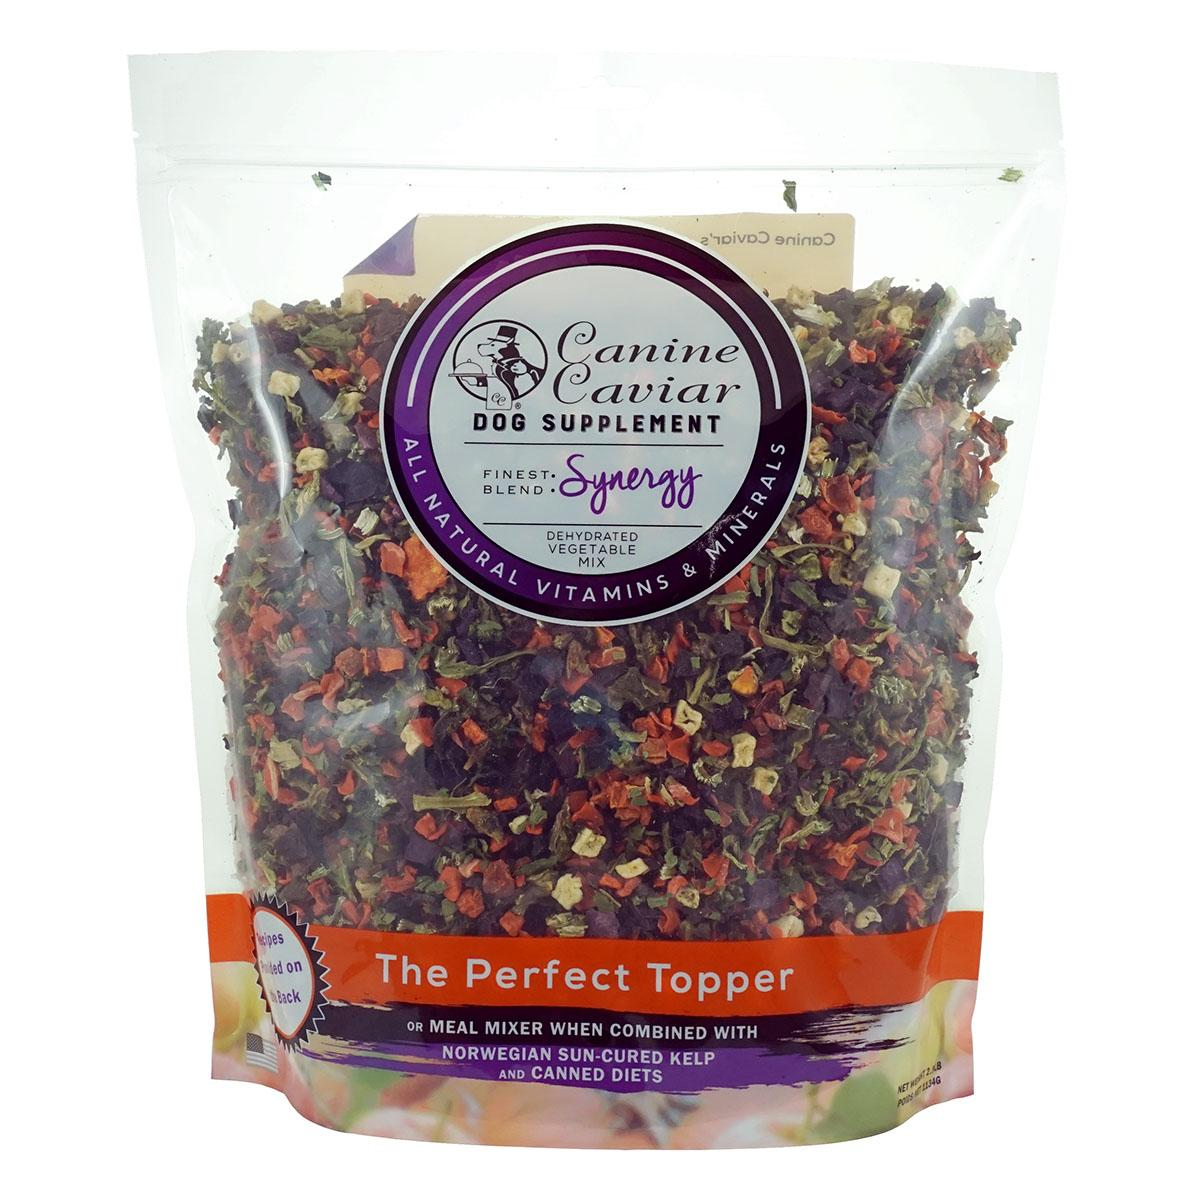 Canine Caviar Synergy Vegetable Mix Dog Food Supplement